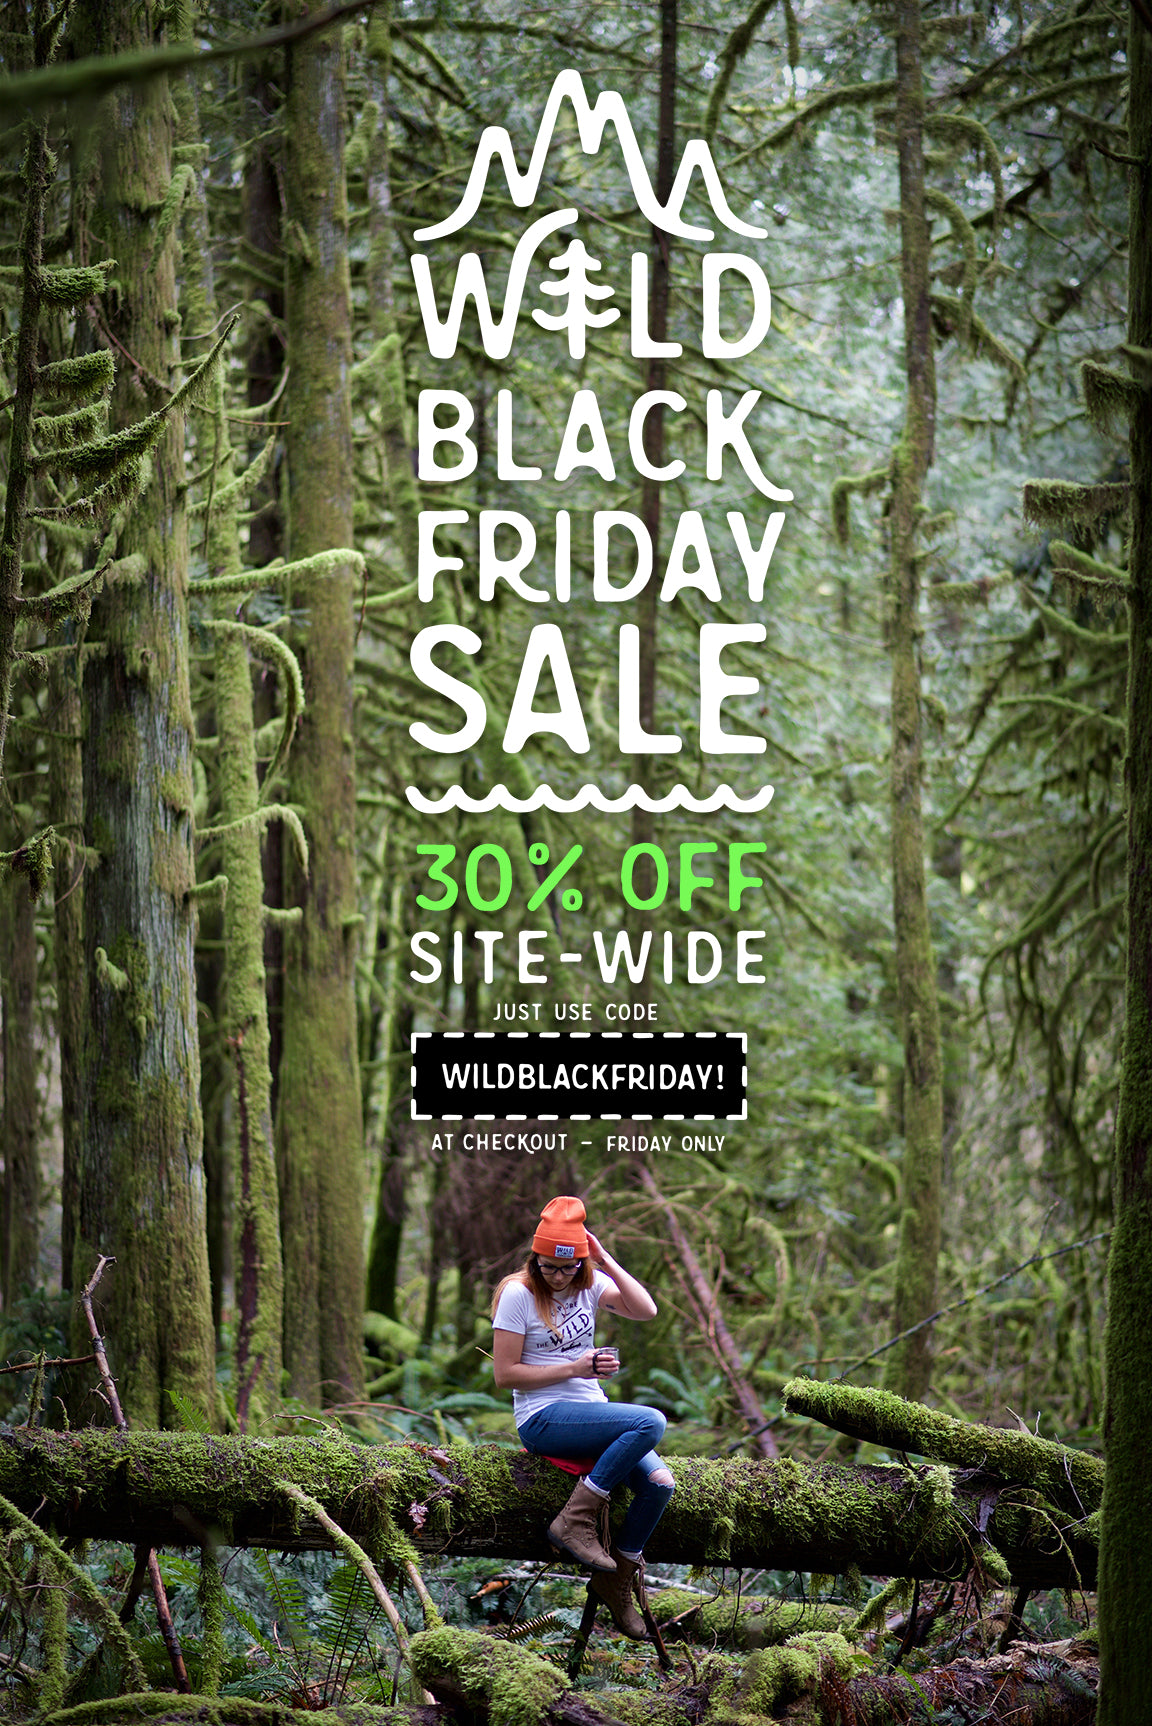 WILD OUTDOORS CLUB- BLACK FRIDAY SALE - NOV 25TH